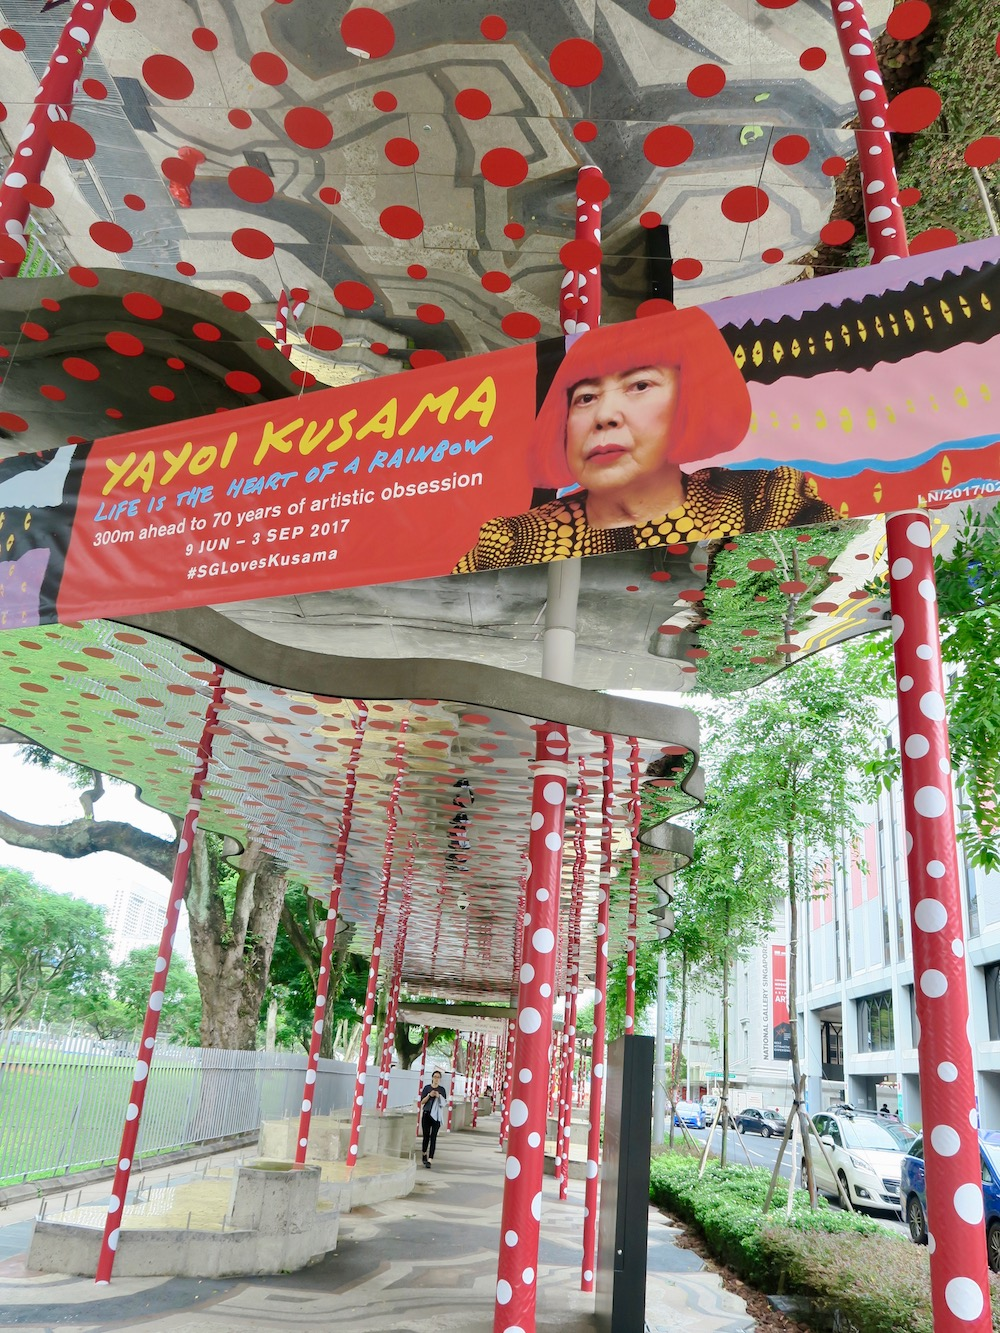 Kusama's polka dots on the streets of Singapore |curlytraveller.com